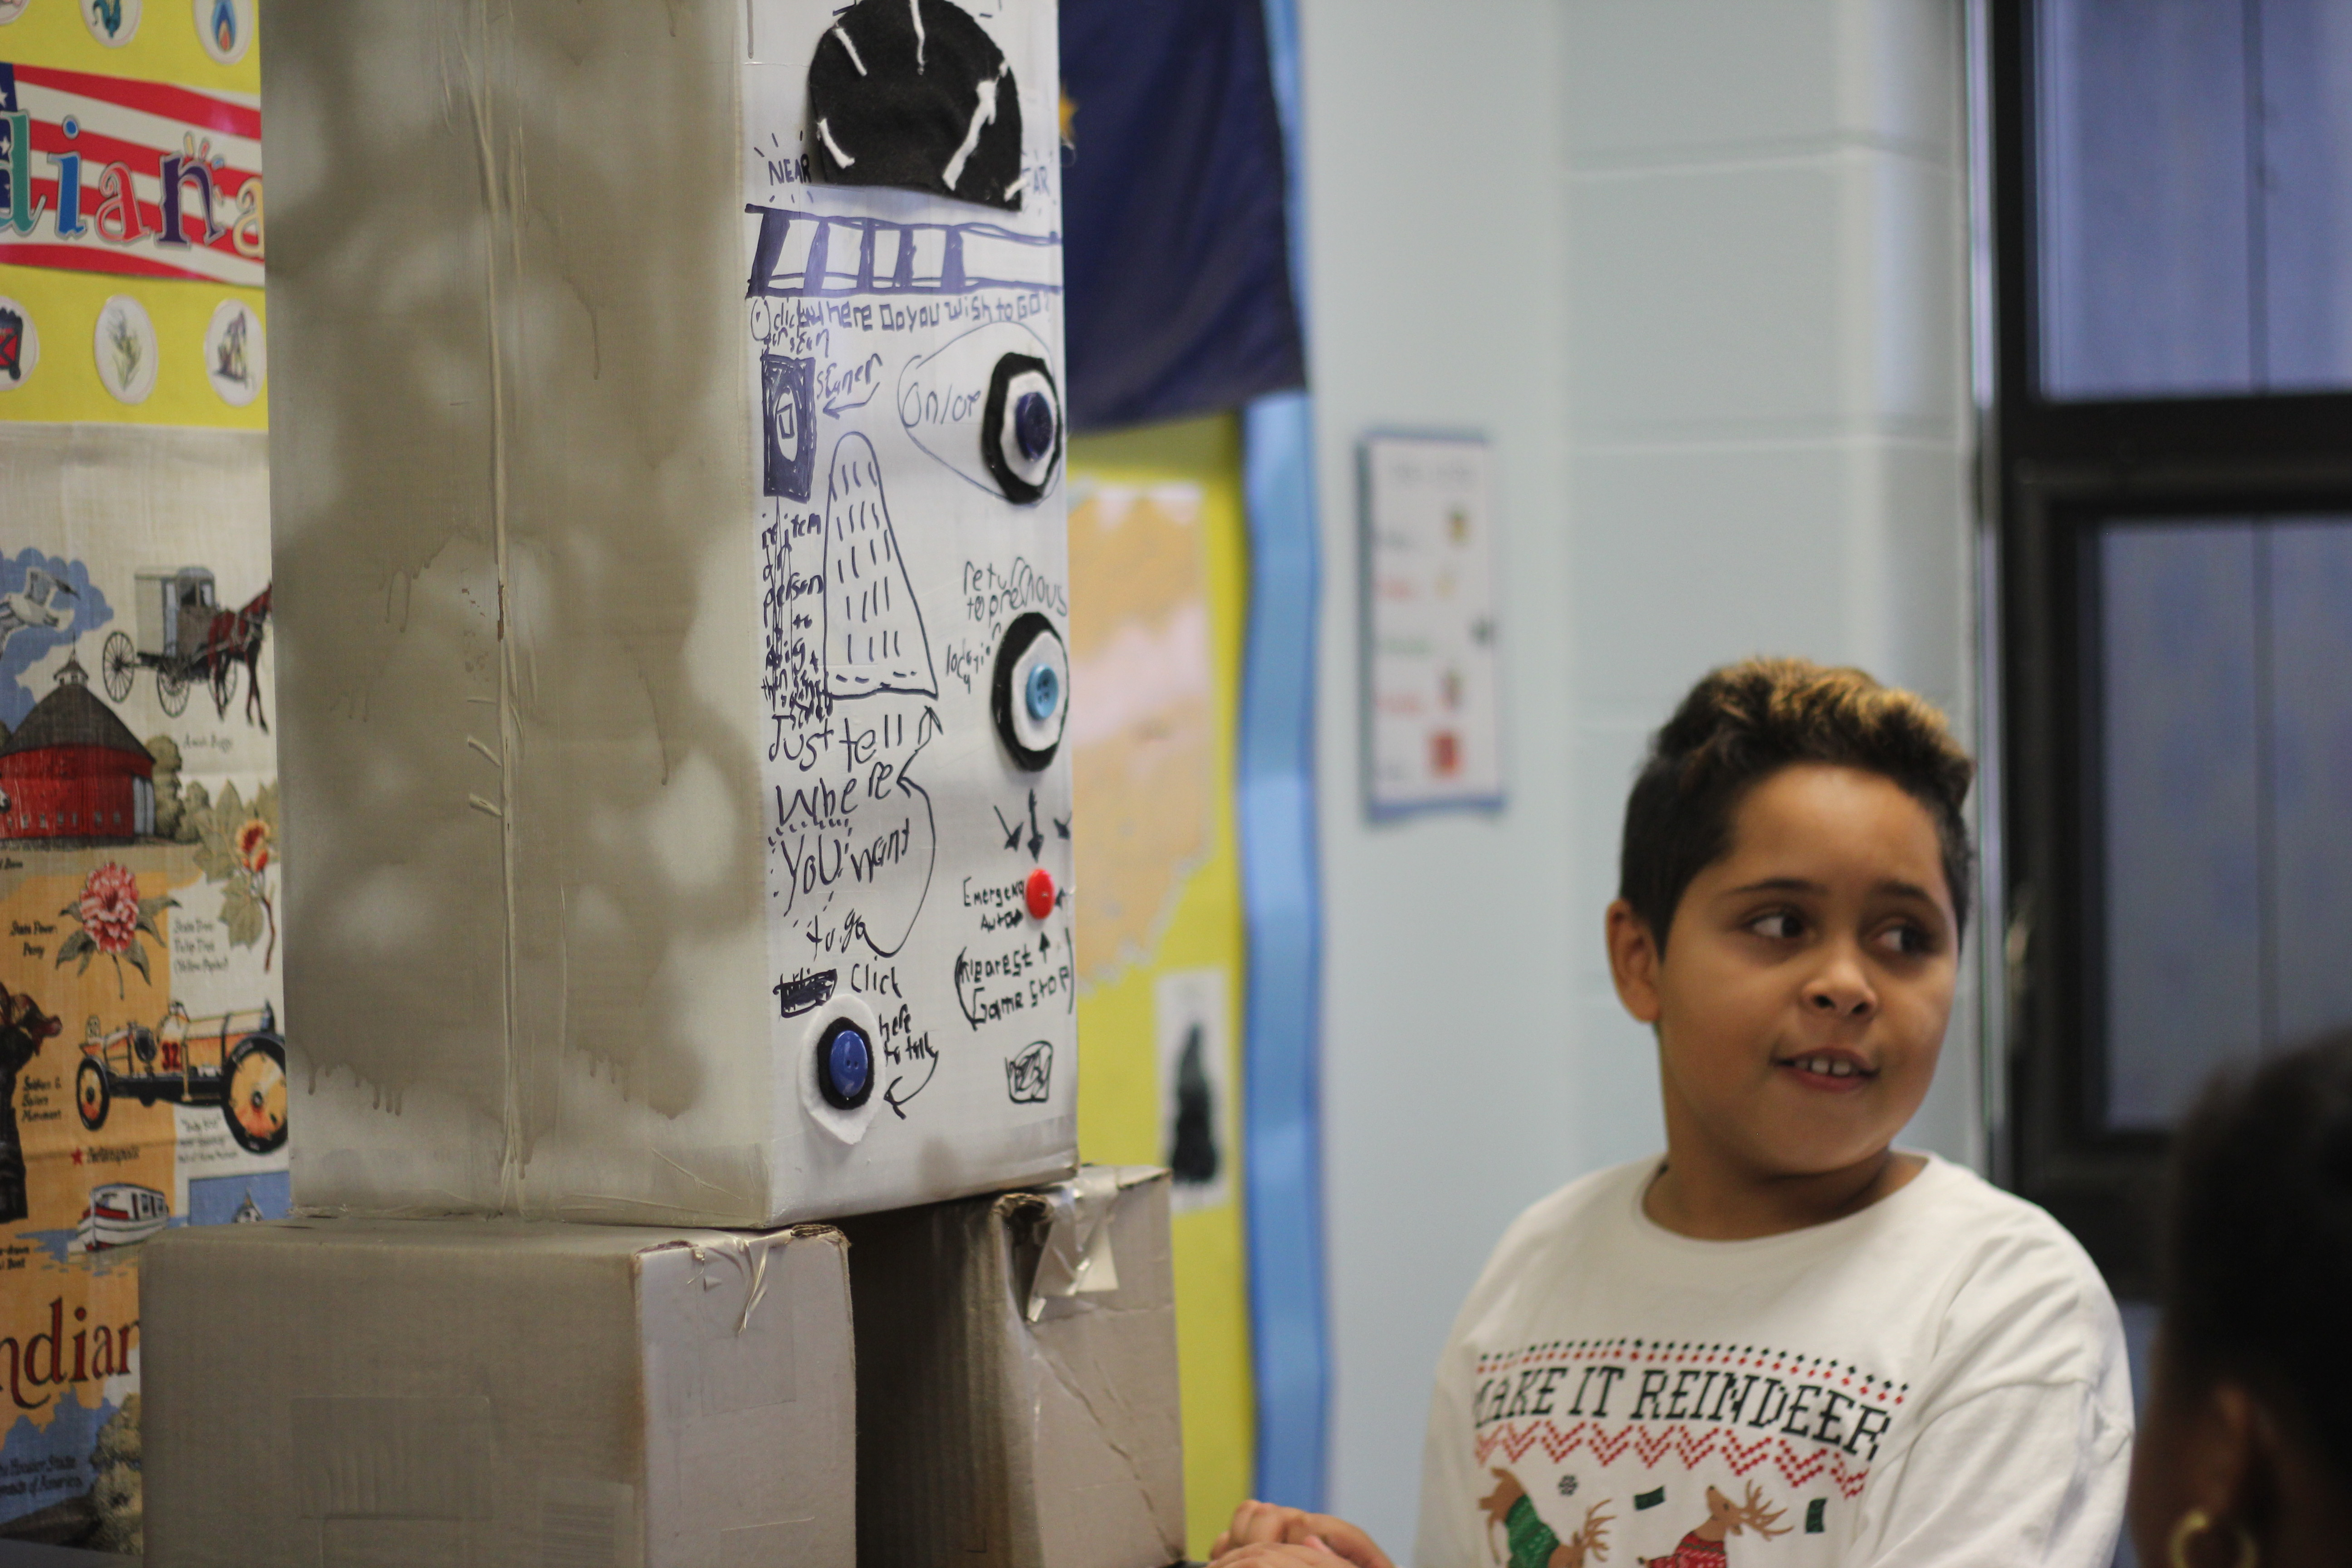 A student shows what his robot does